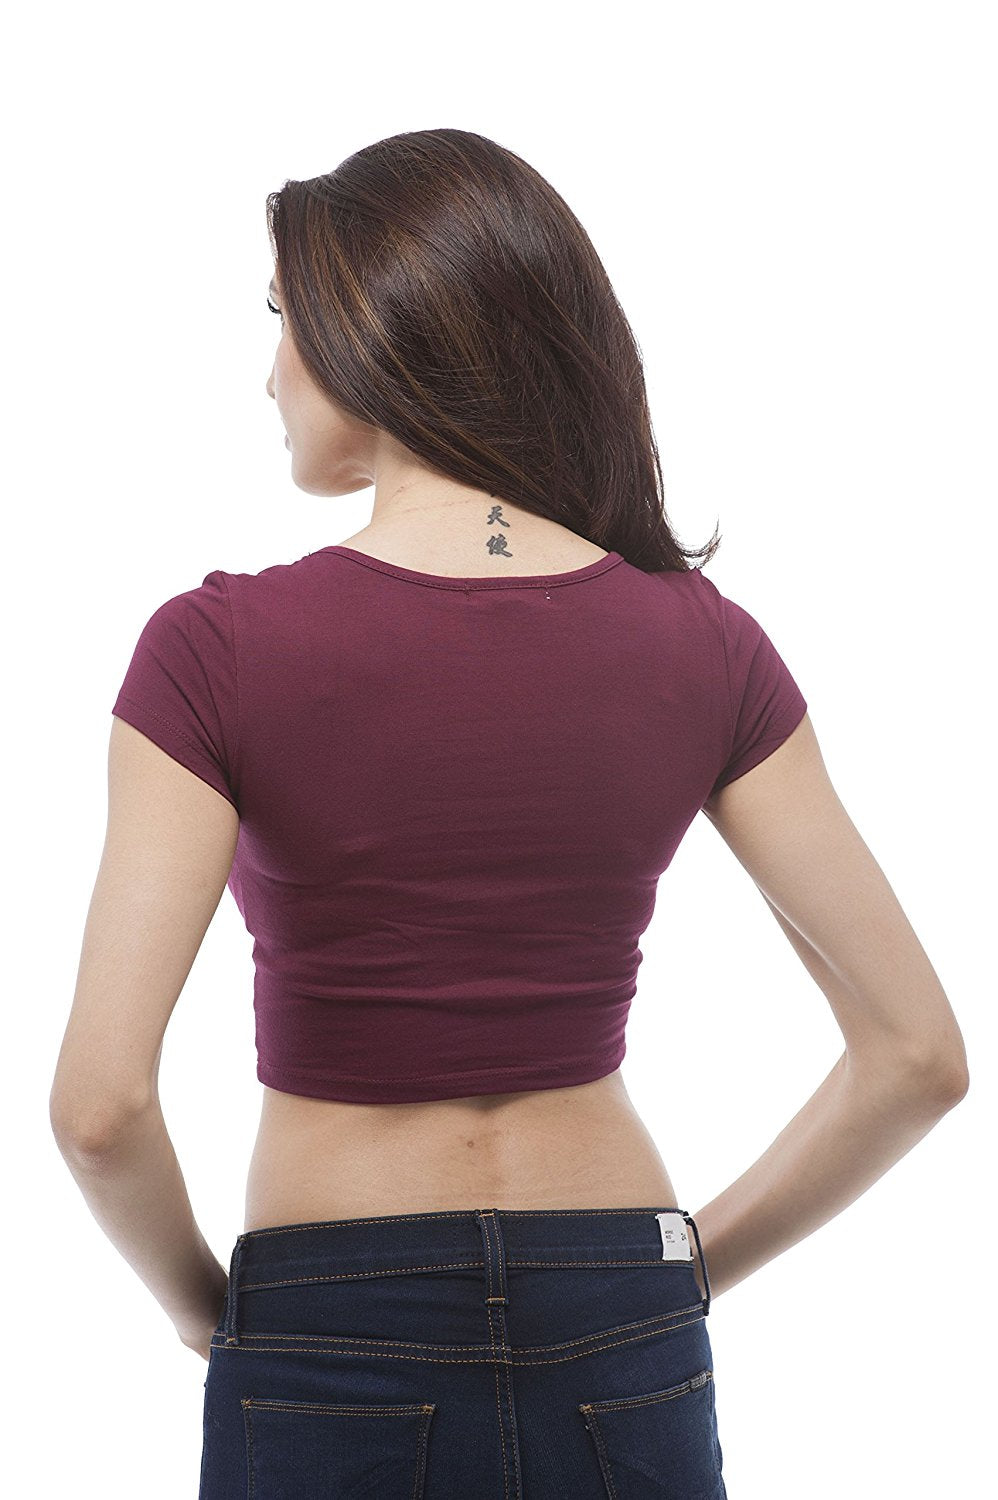 Hollywood Star Fashion Plain Short Sleeve Cotton Scoop Neck Crop Top